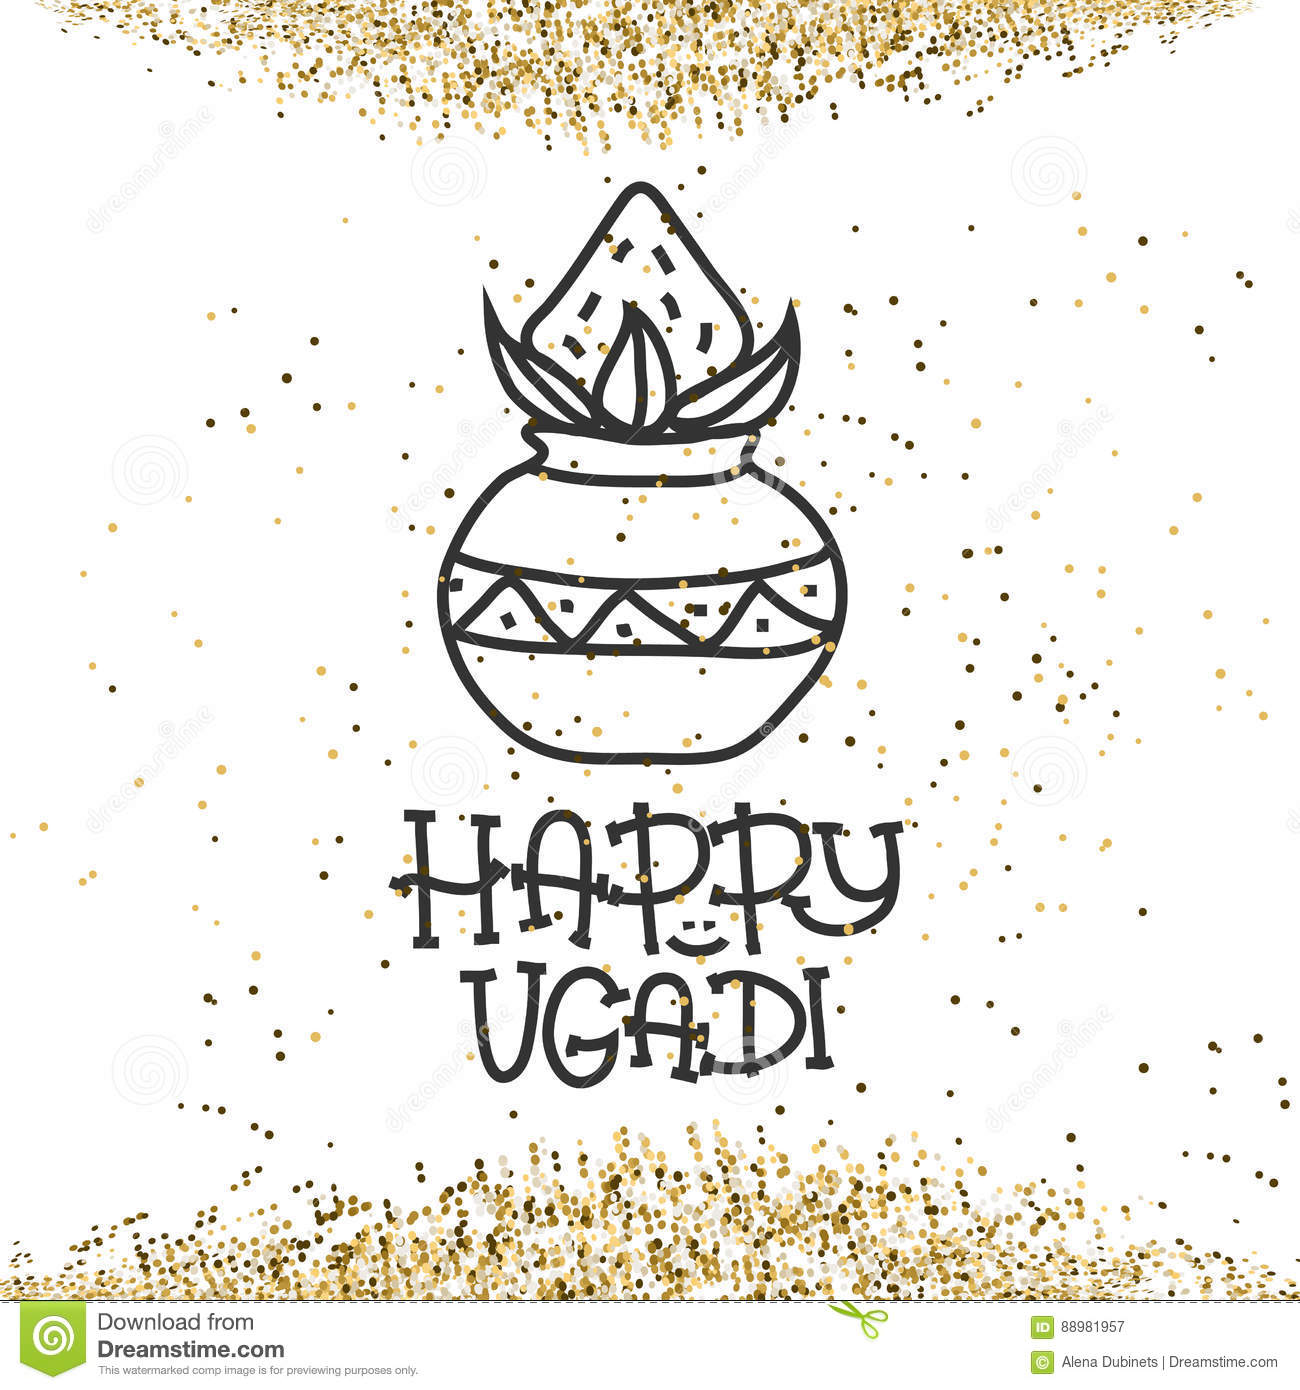 happy ugadi the hindu new year greeting card template for holiday